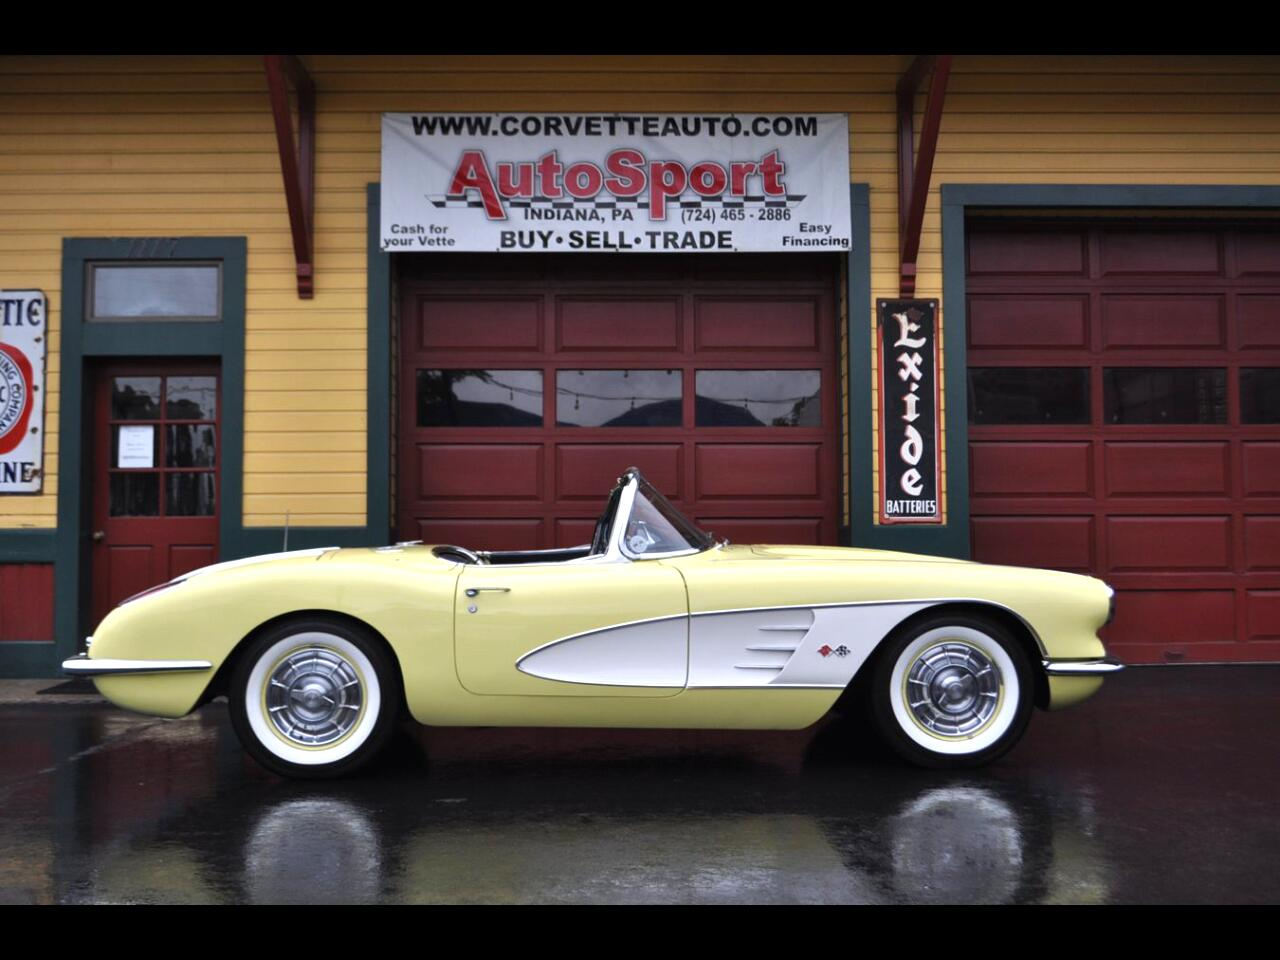 1958 Chevrolet Corvette Extemely Rare Panama Yellow 1958 Corvette!